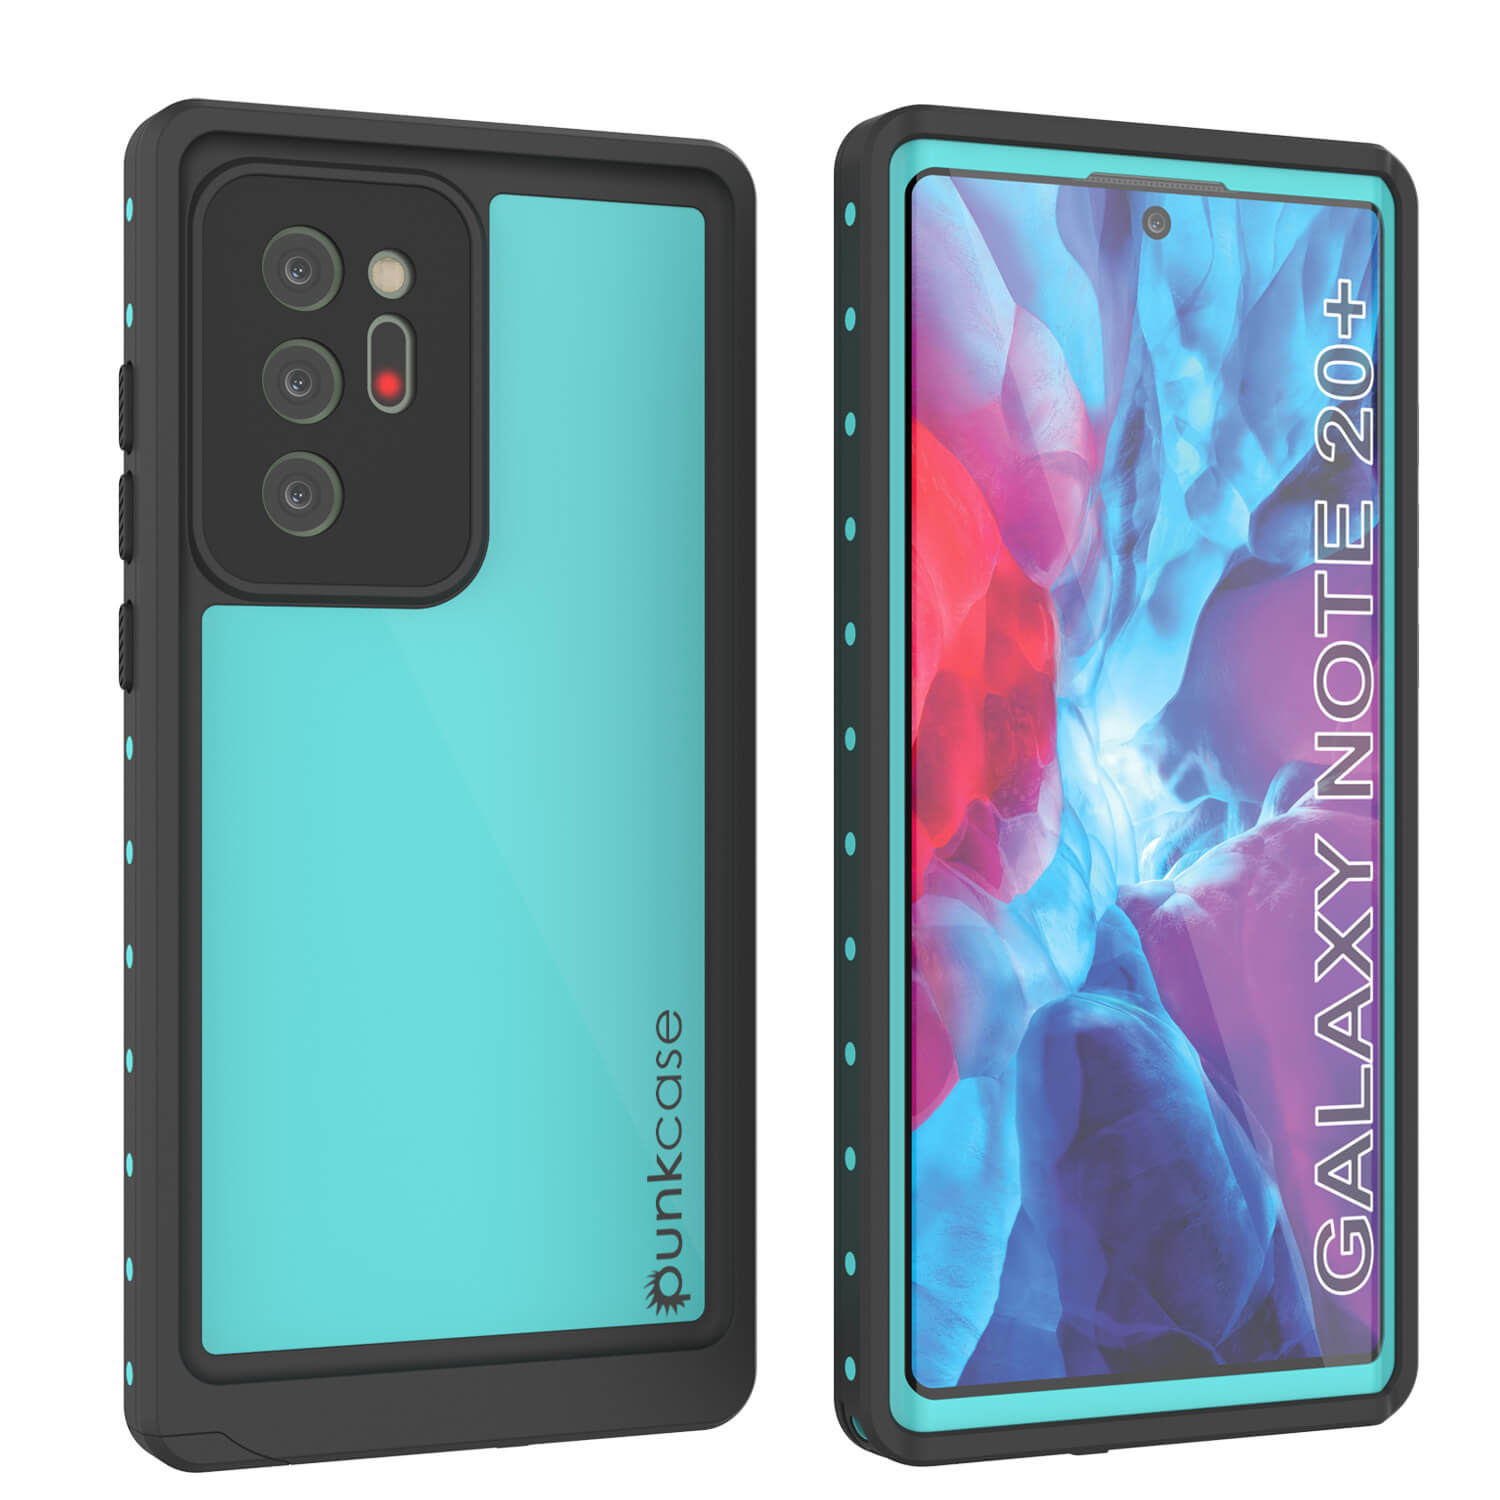 Galaxy Note 20 Ultra Waterproof Case, Punkcase Studstar Series Teal Thin Armor Cover